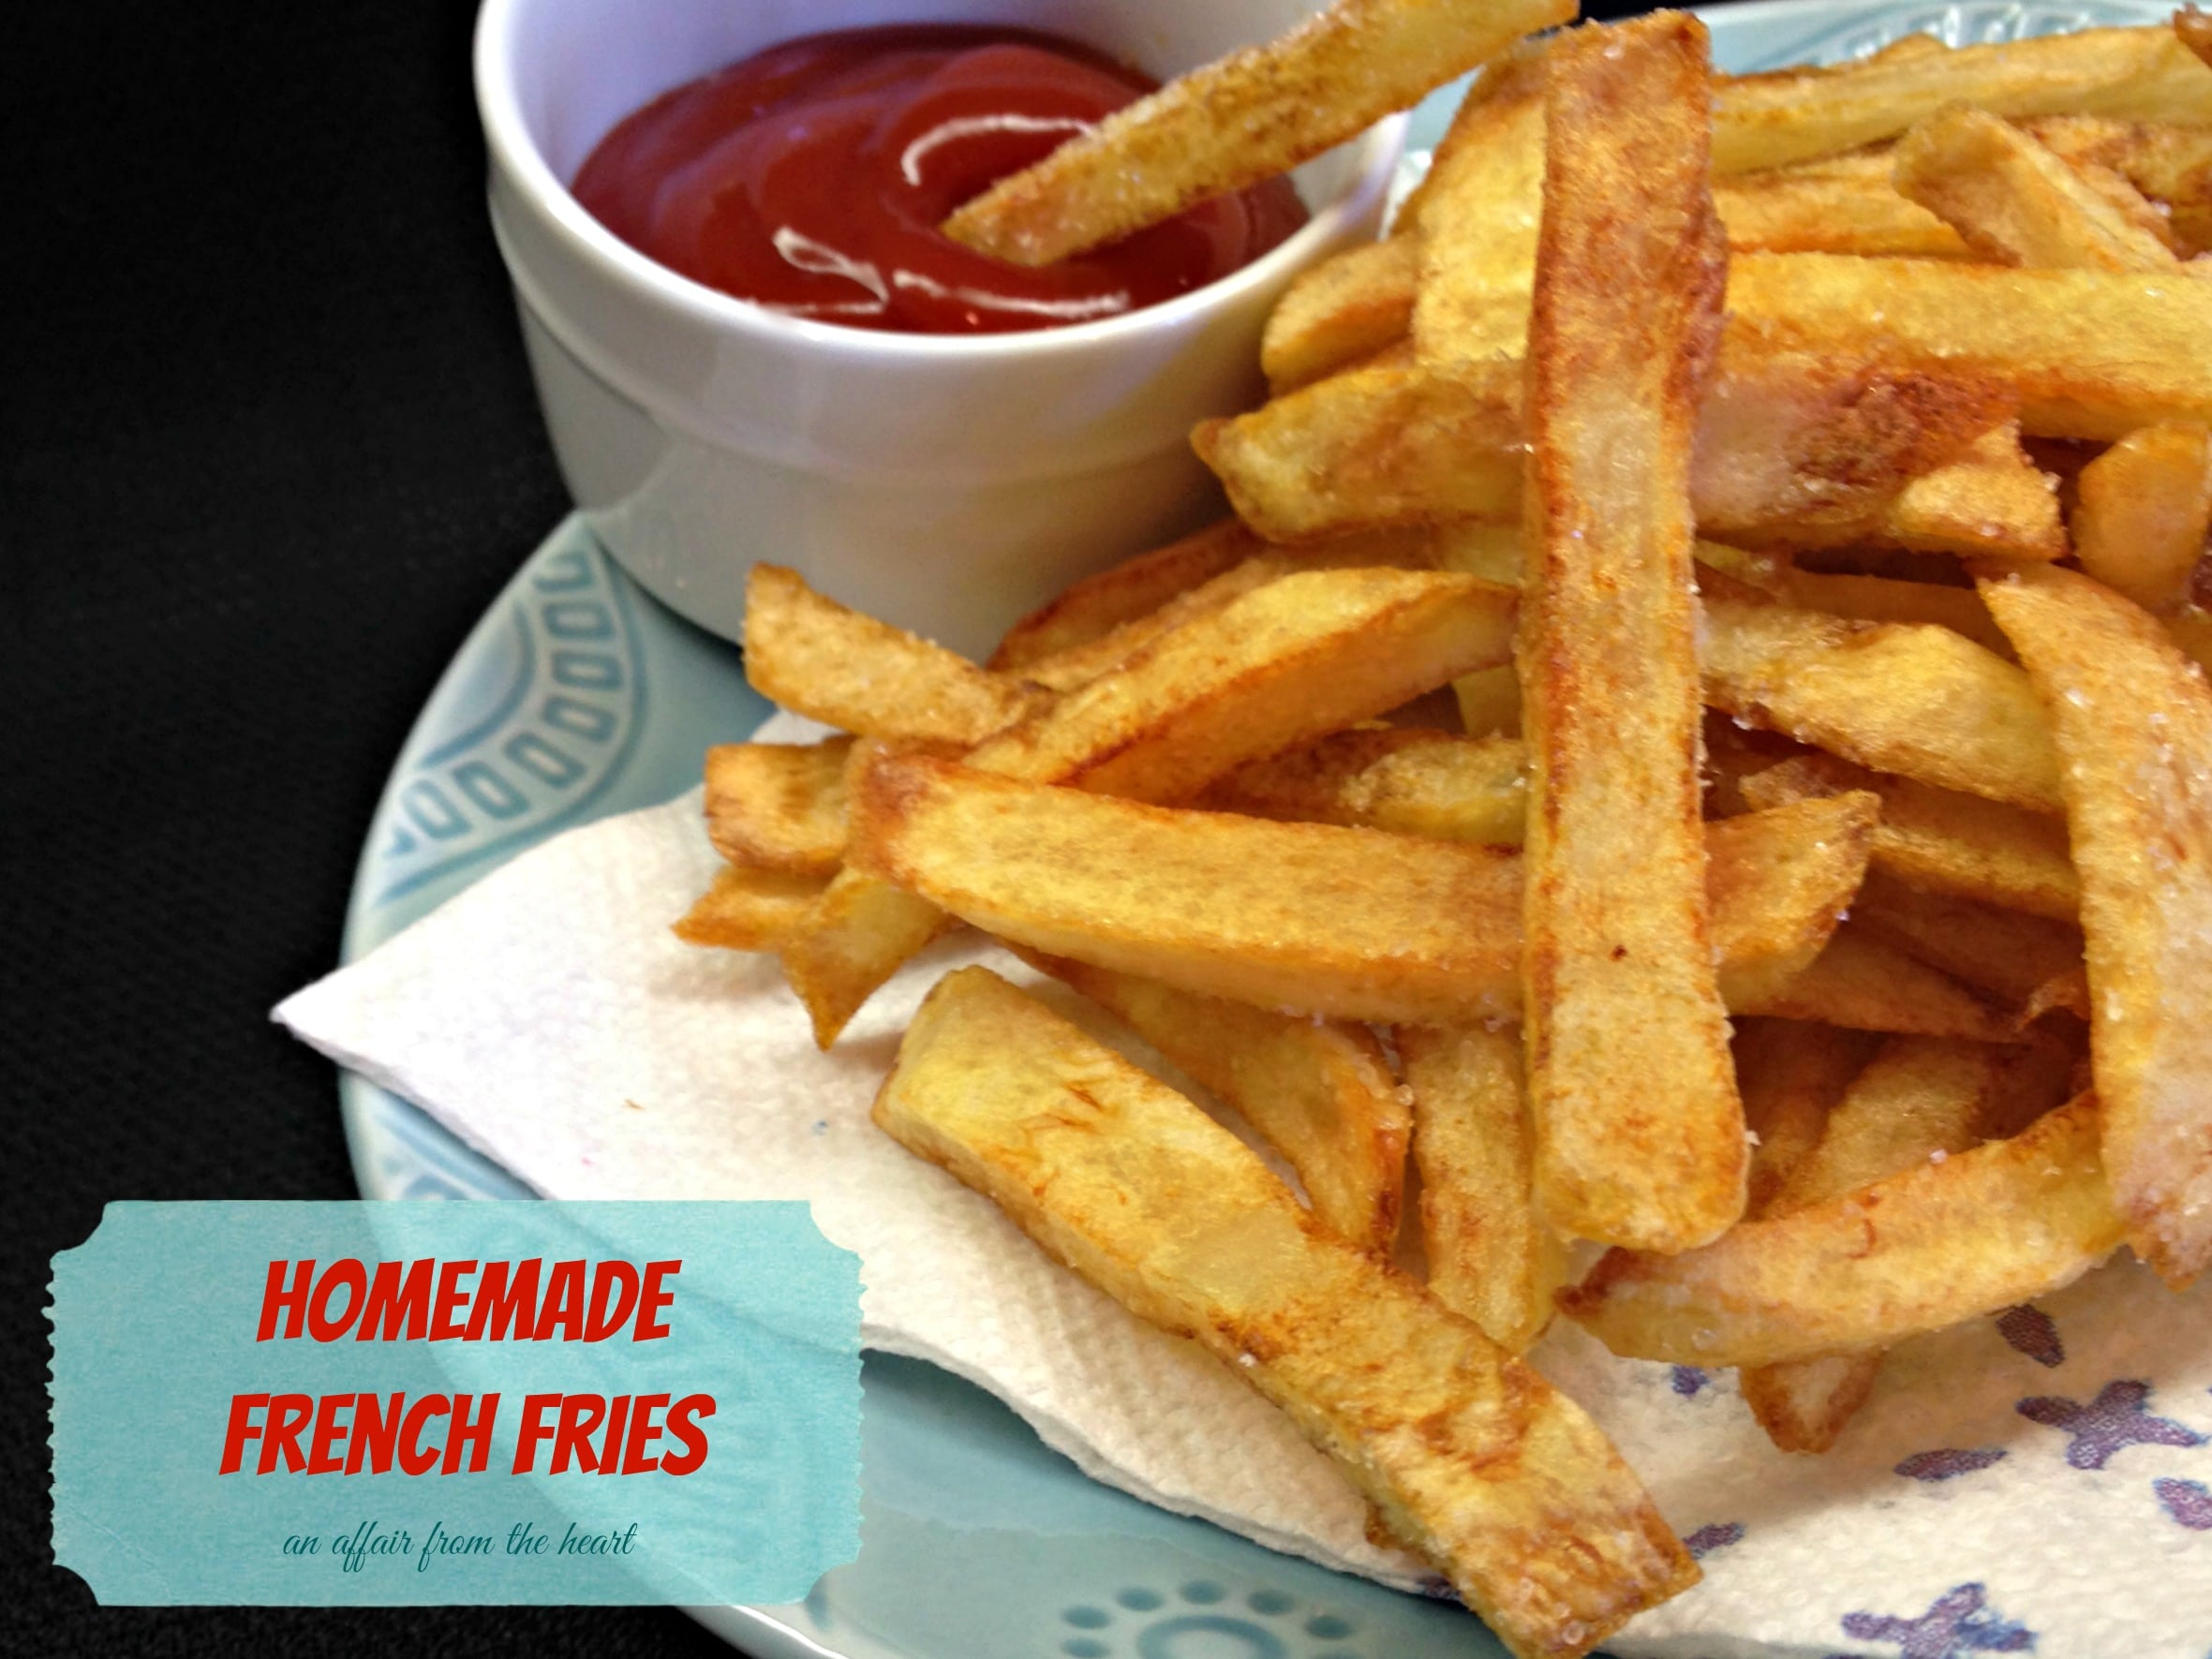 Homemade Double Fried French Fries